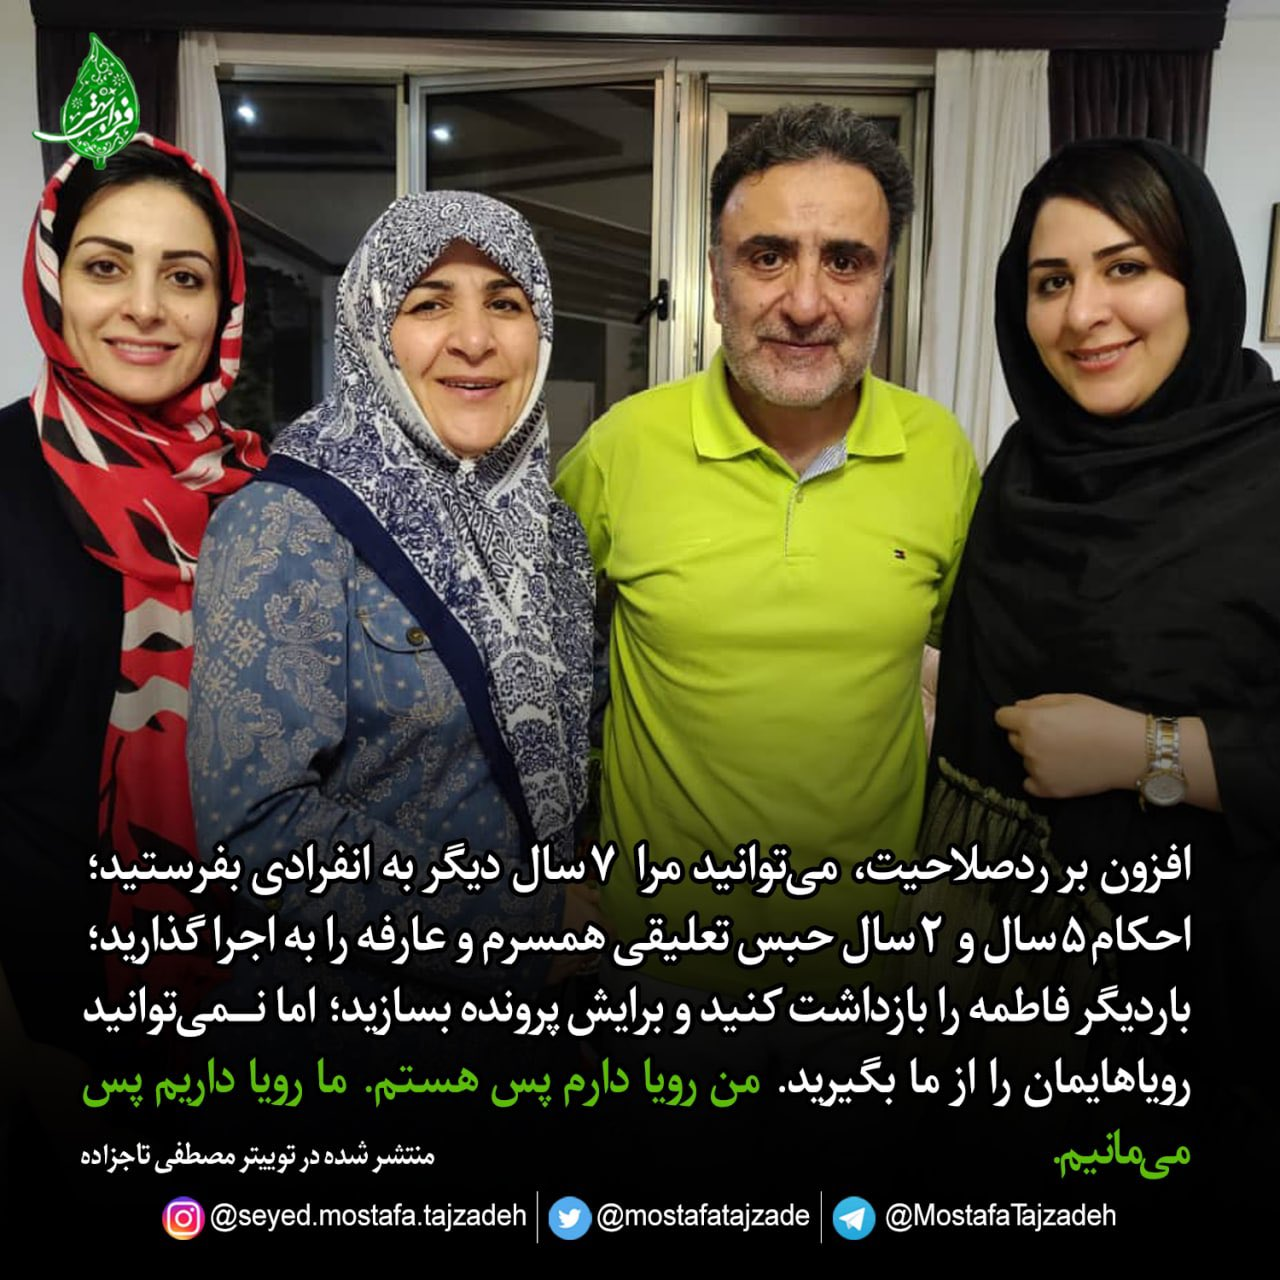 Disqualified Iranian presidential candidate, Mostafa Tajzadeh, and his family